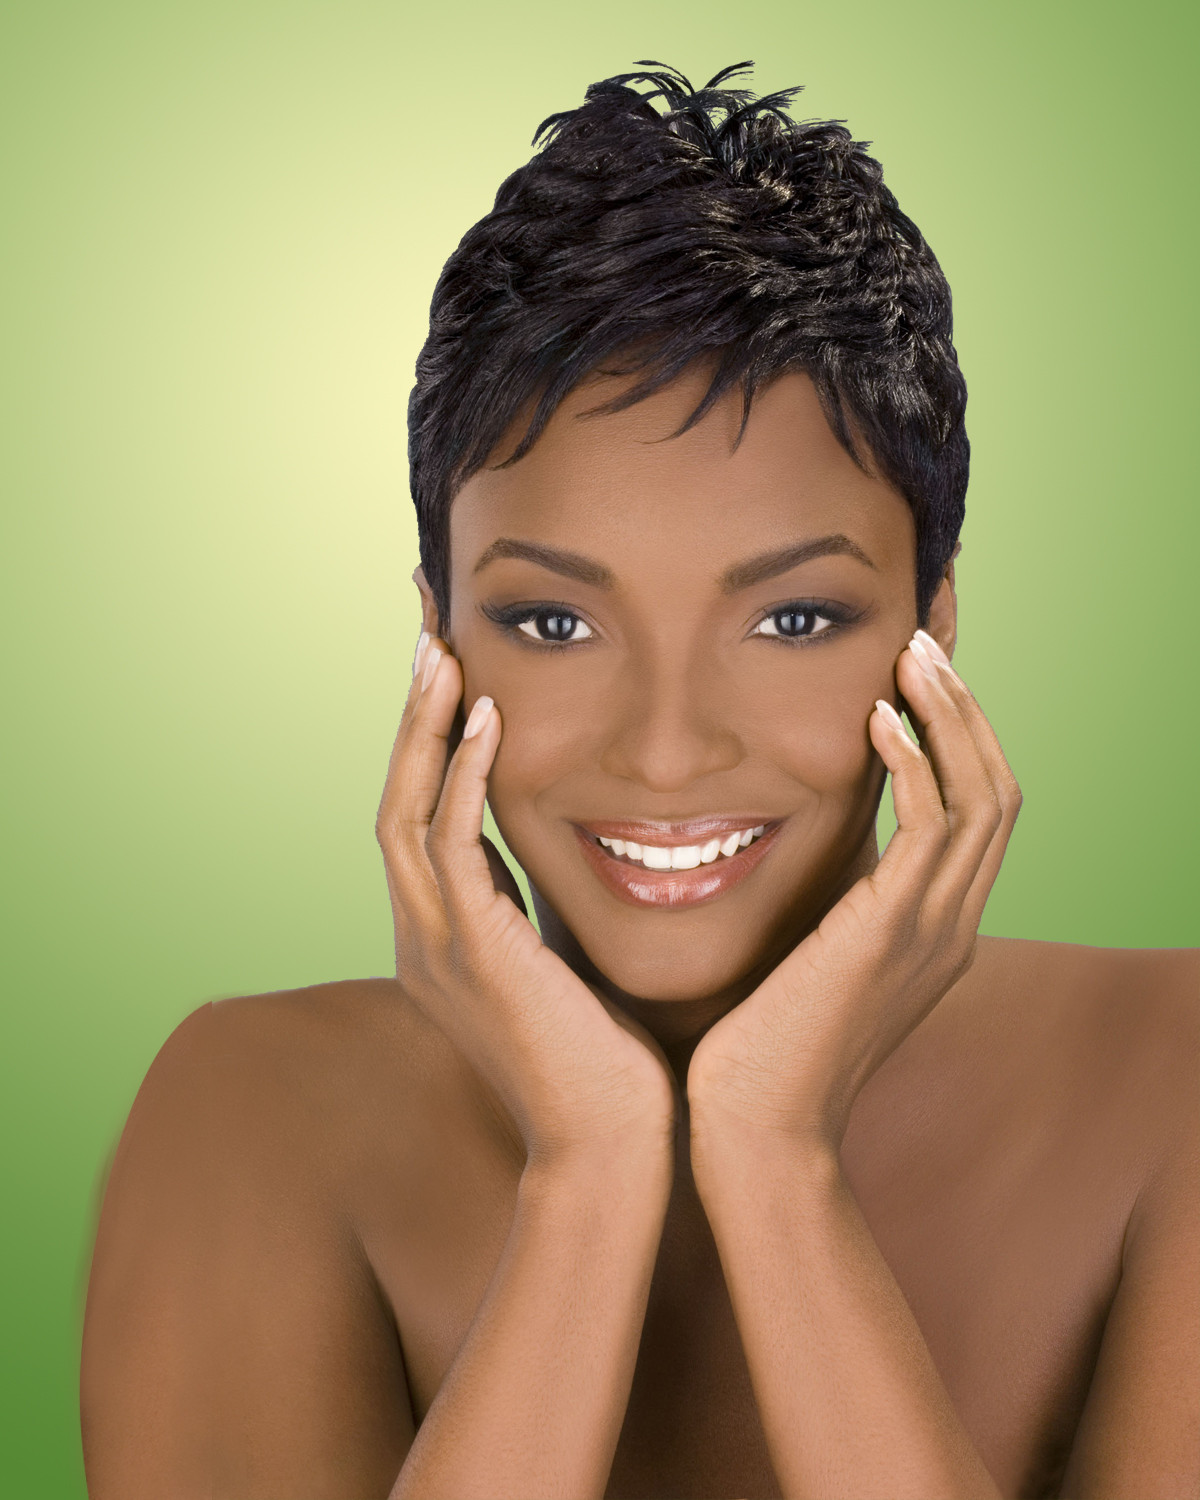 Best ideas about Short Hairstyles For Black Women With Thin Hair . Save or Pin Top 14 Casual Short Hairstyles for Black Women Now.